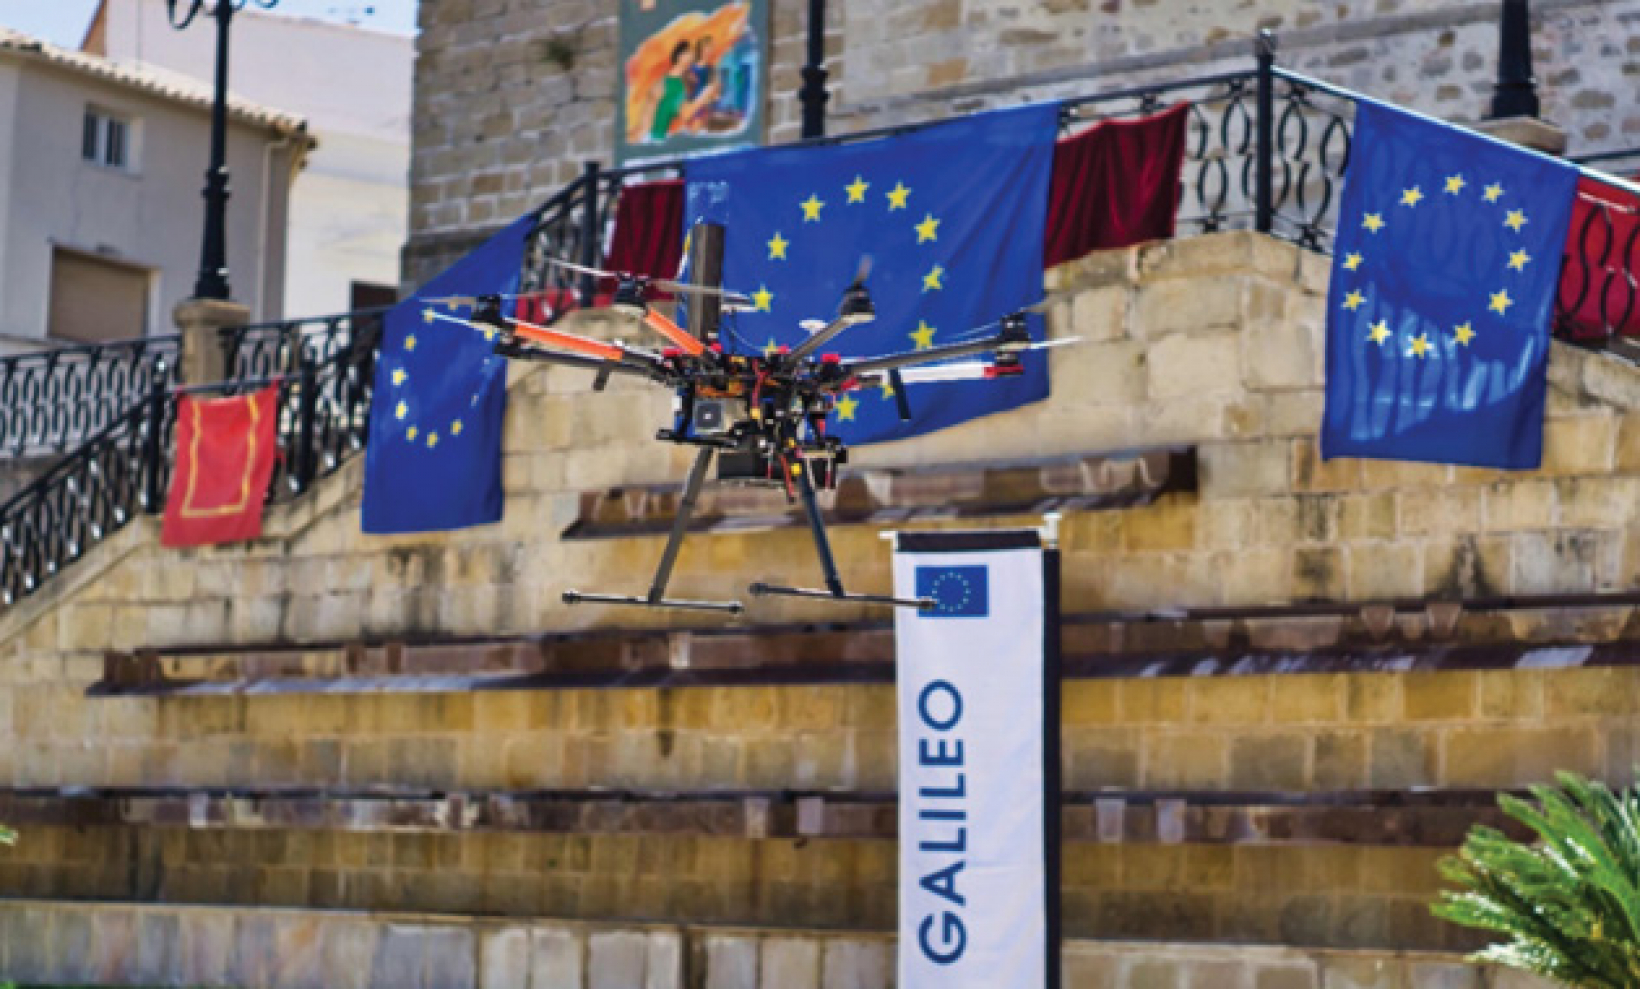 EGNSS-enabled drone flying in the urban environment of Villacarrillo, Spain